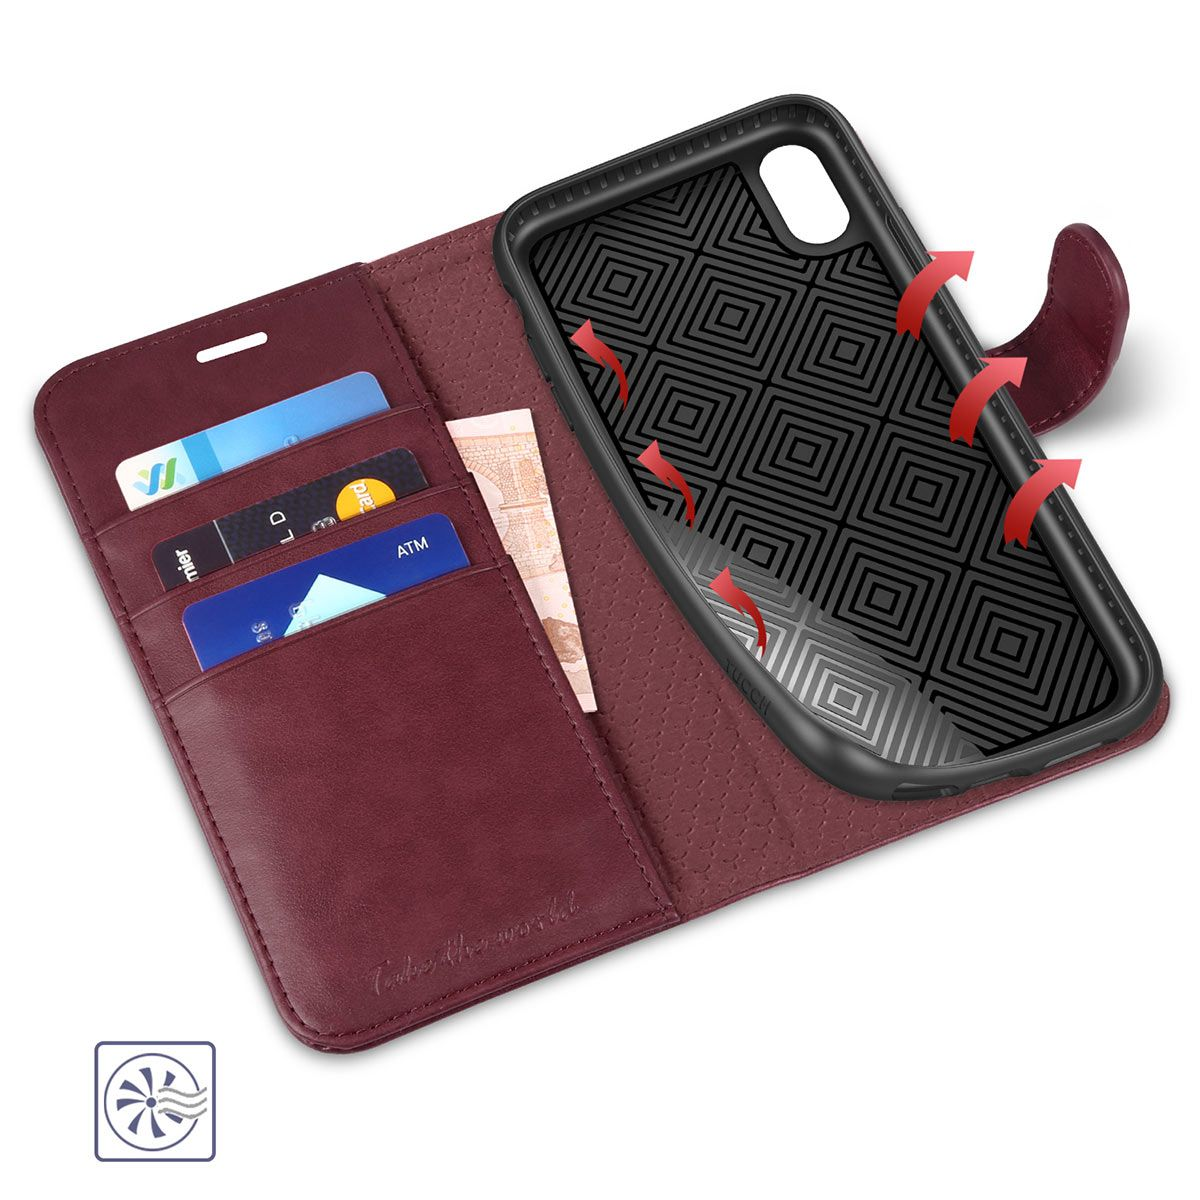 Tucch Iphone Xr Wallet Case Iphone 10r Leather Case